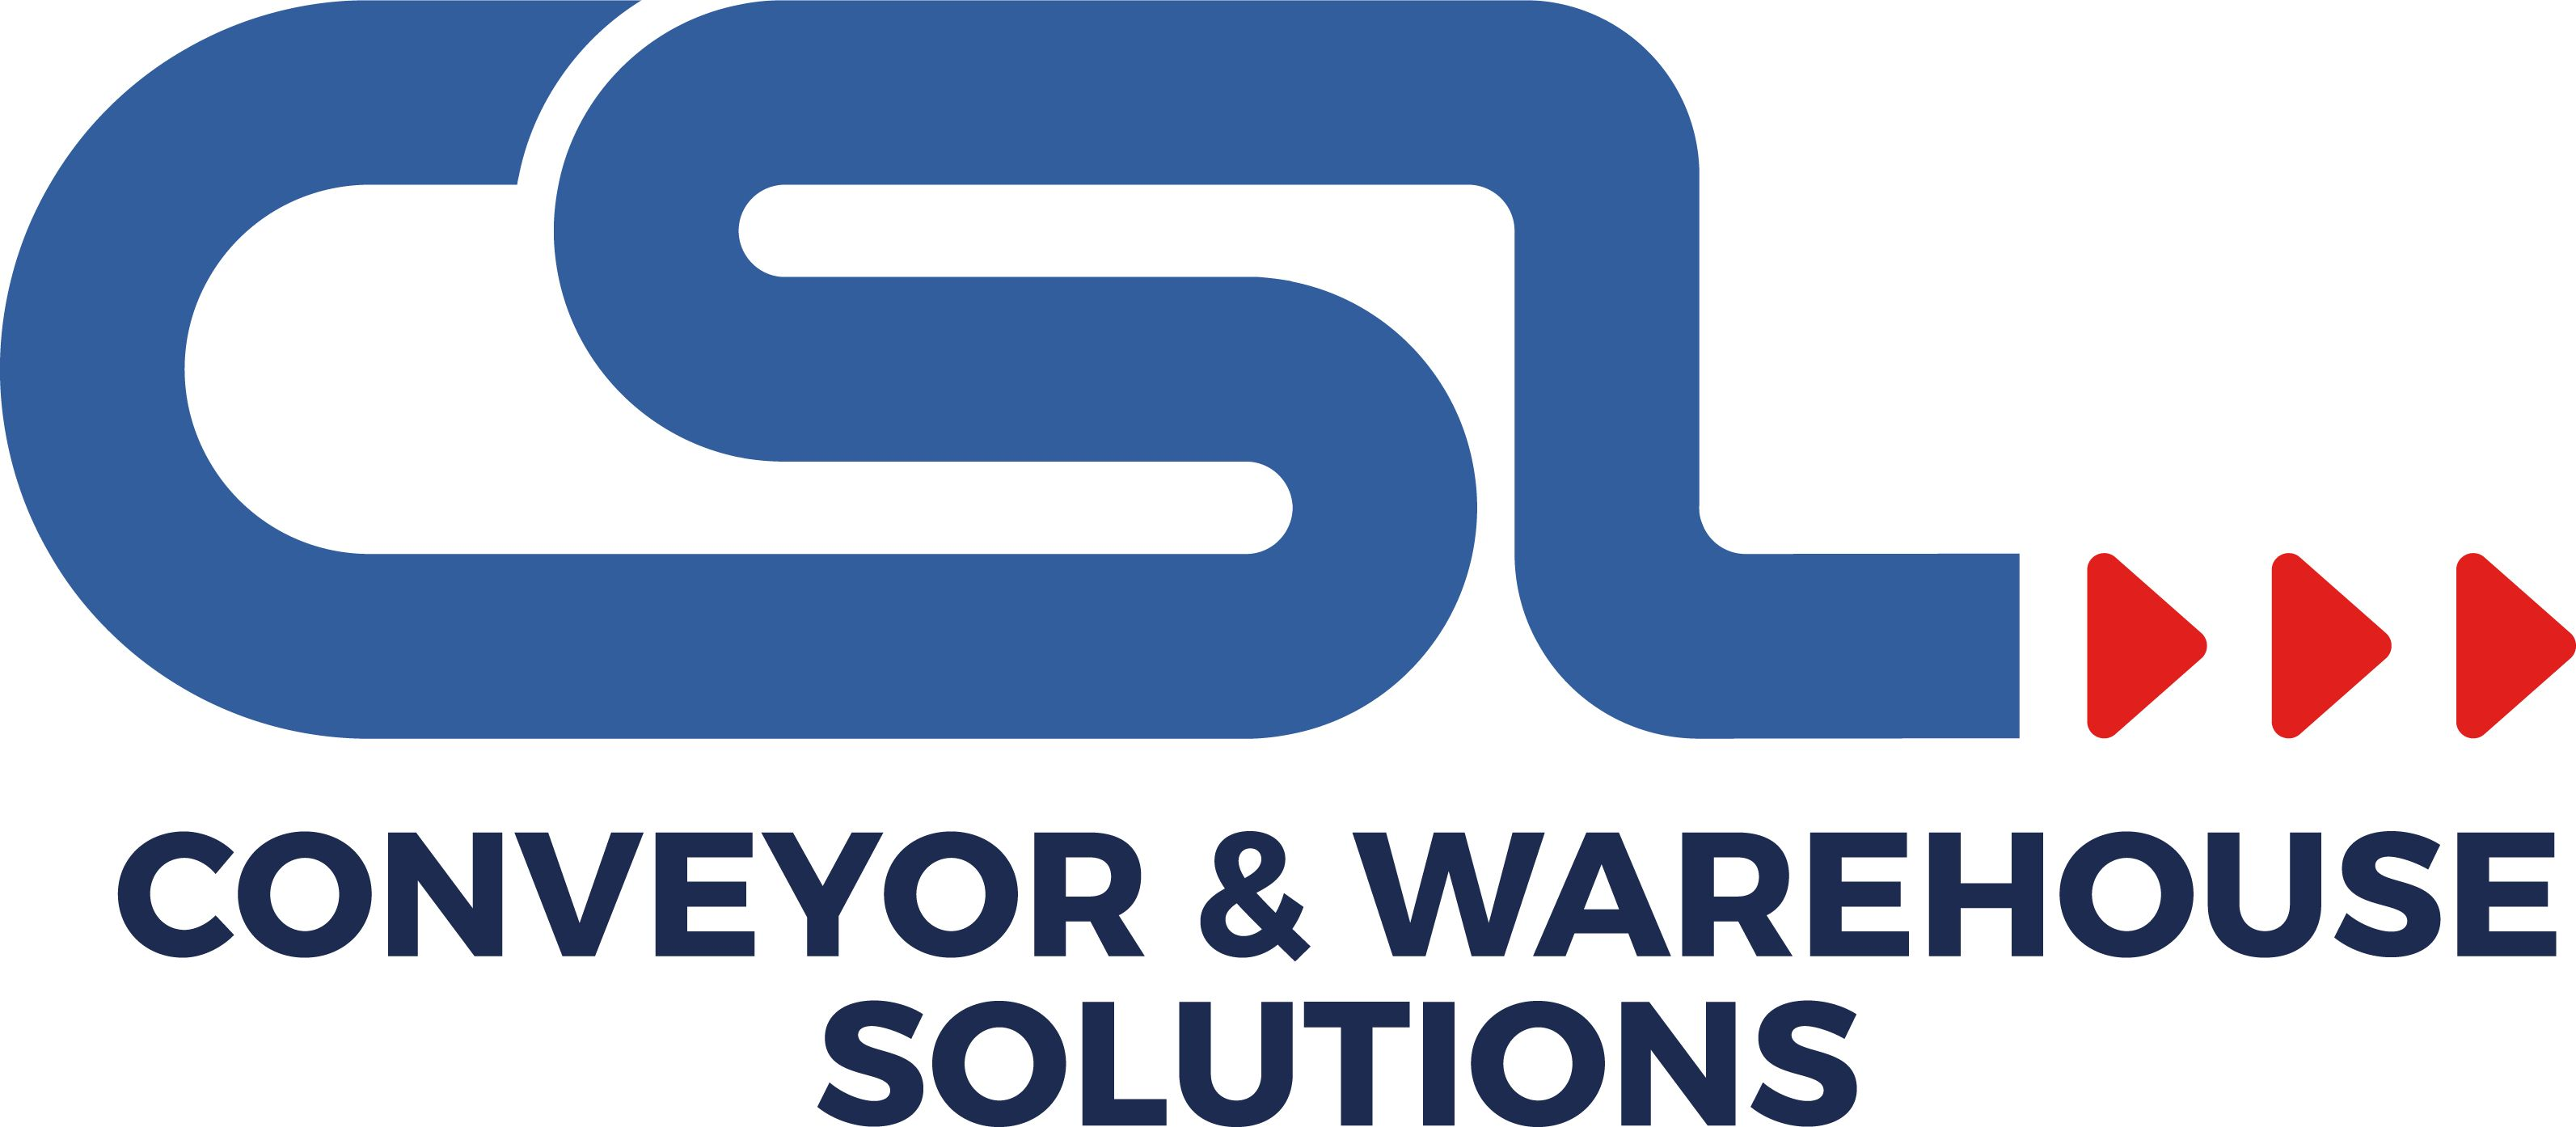 Conveyor Systems Ltd (CSL)